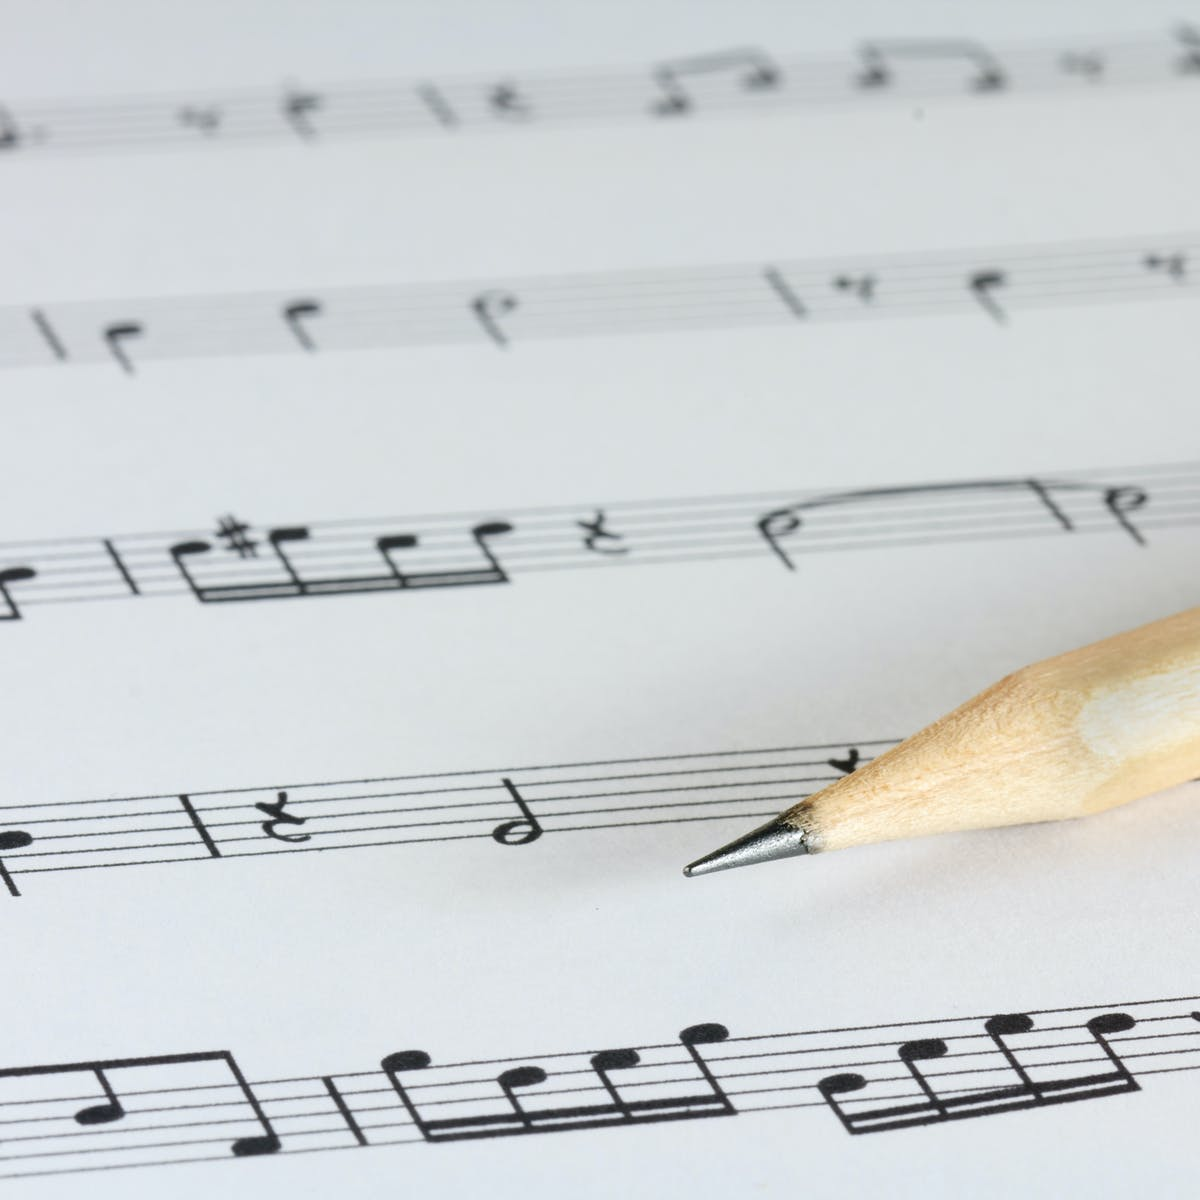 Understanding Music Of Neural >> How The Brain Reads Music The Evidence For Musical Dyslexia